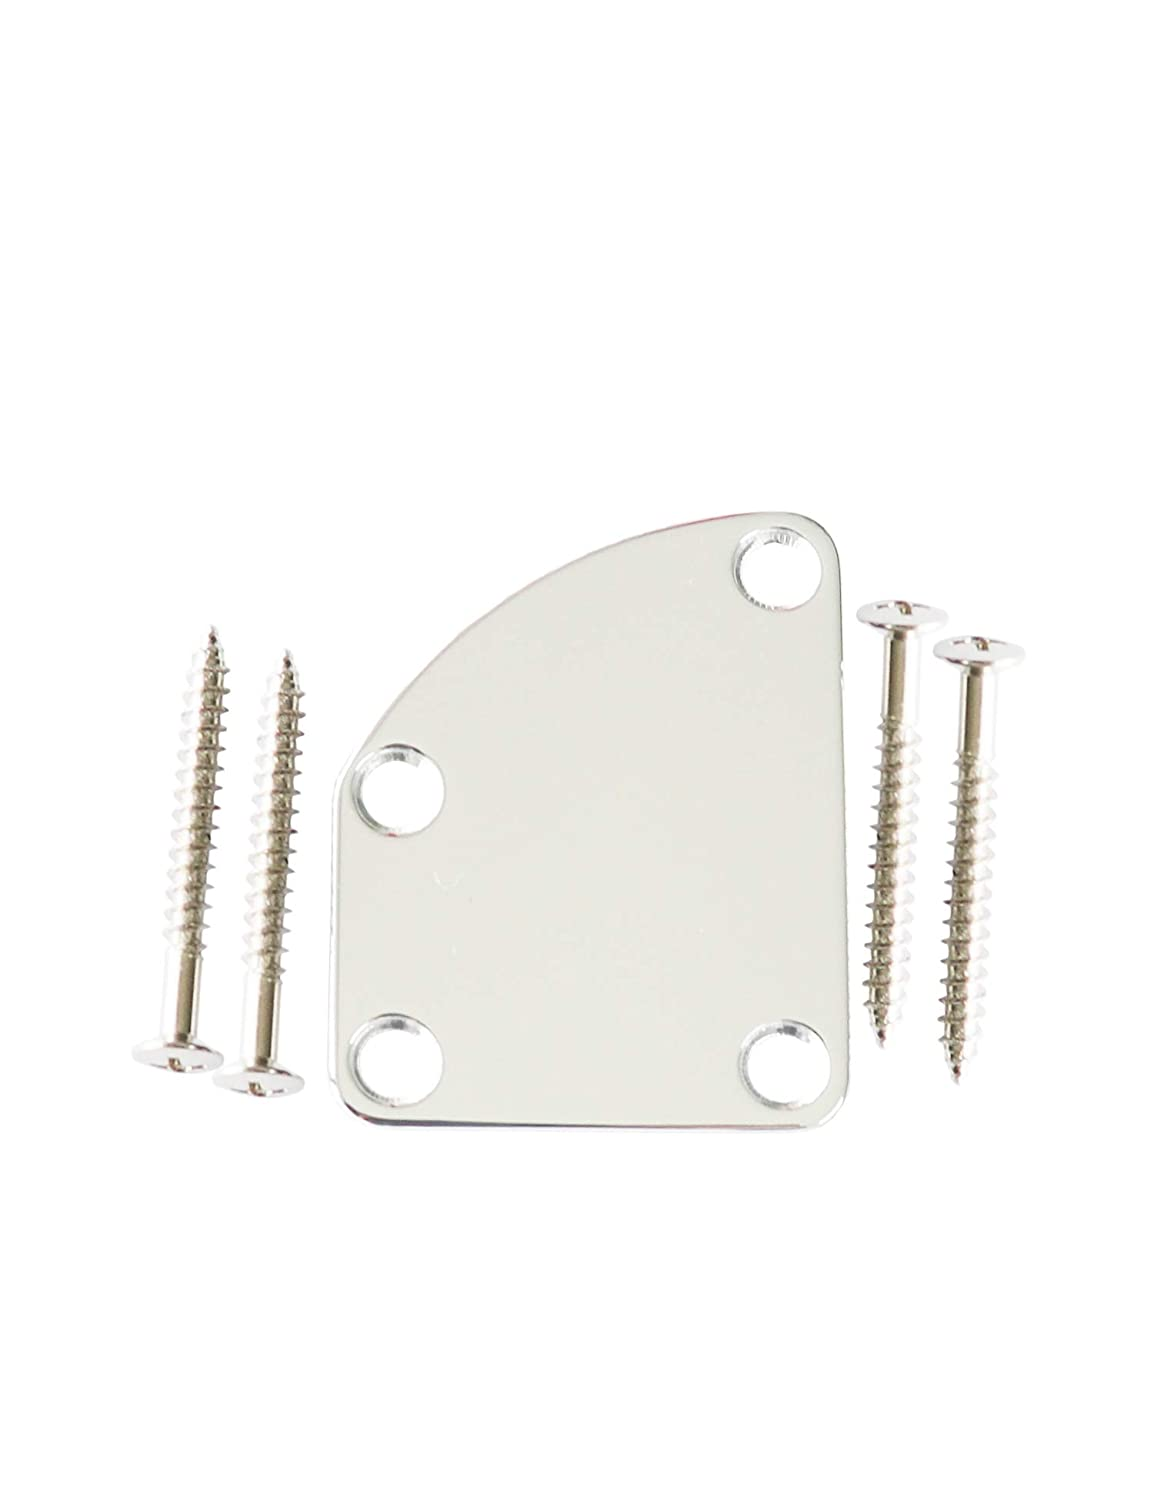 Metallor Electric Guitar Neck Plate Curved Cutaway Semi Round Neck Joint Back Mounting Plate 4 Holes with Screws Compatible with Stratocaster Telecaster Style Guitar Bass Parts Replacement